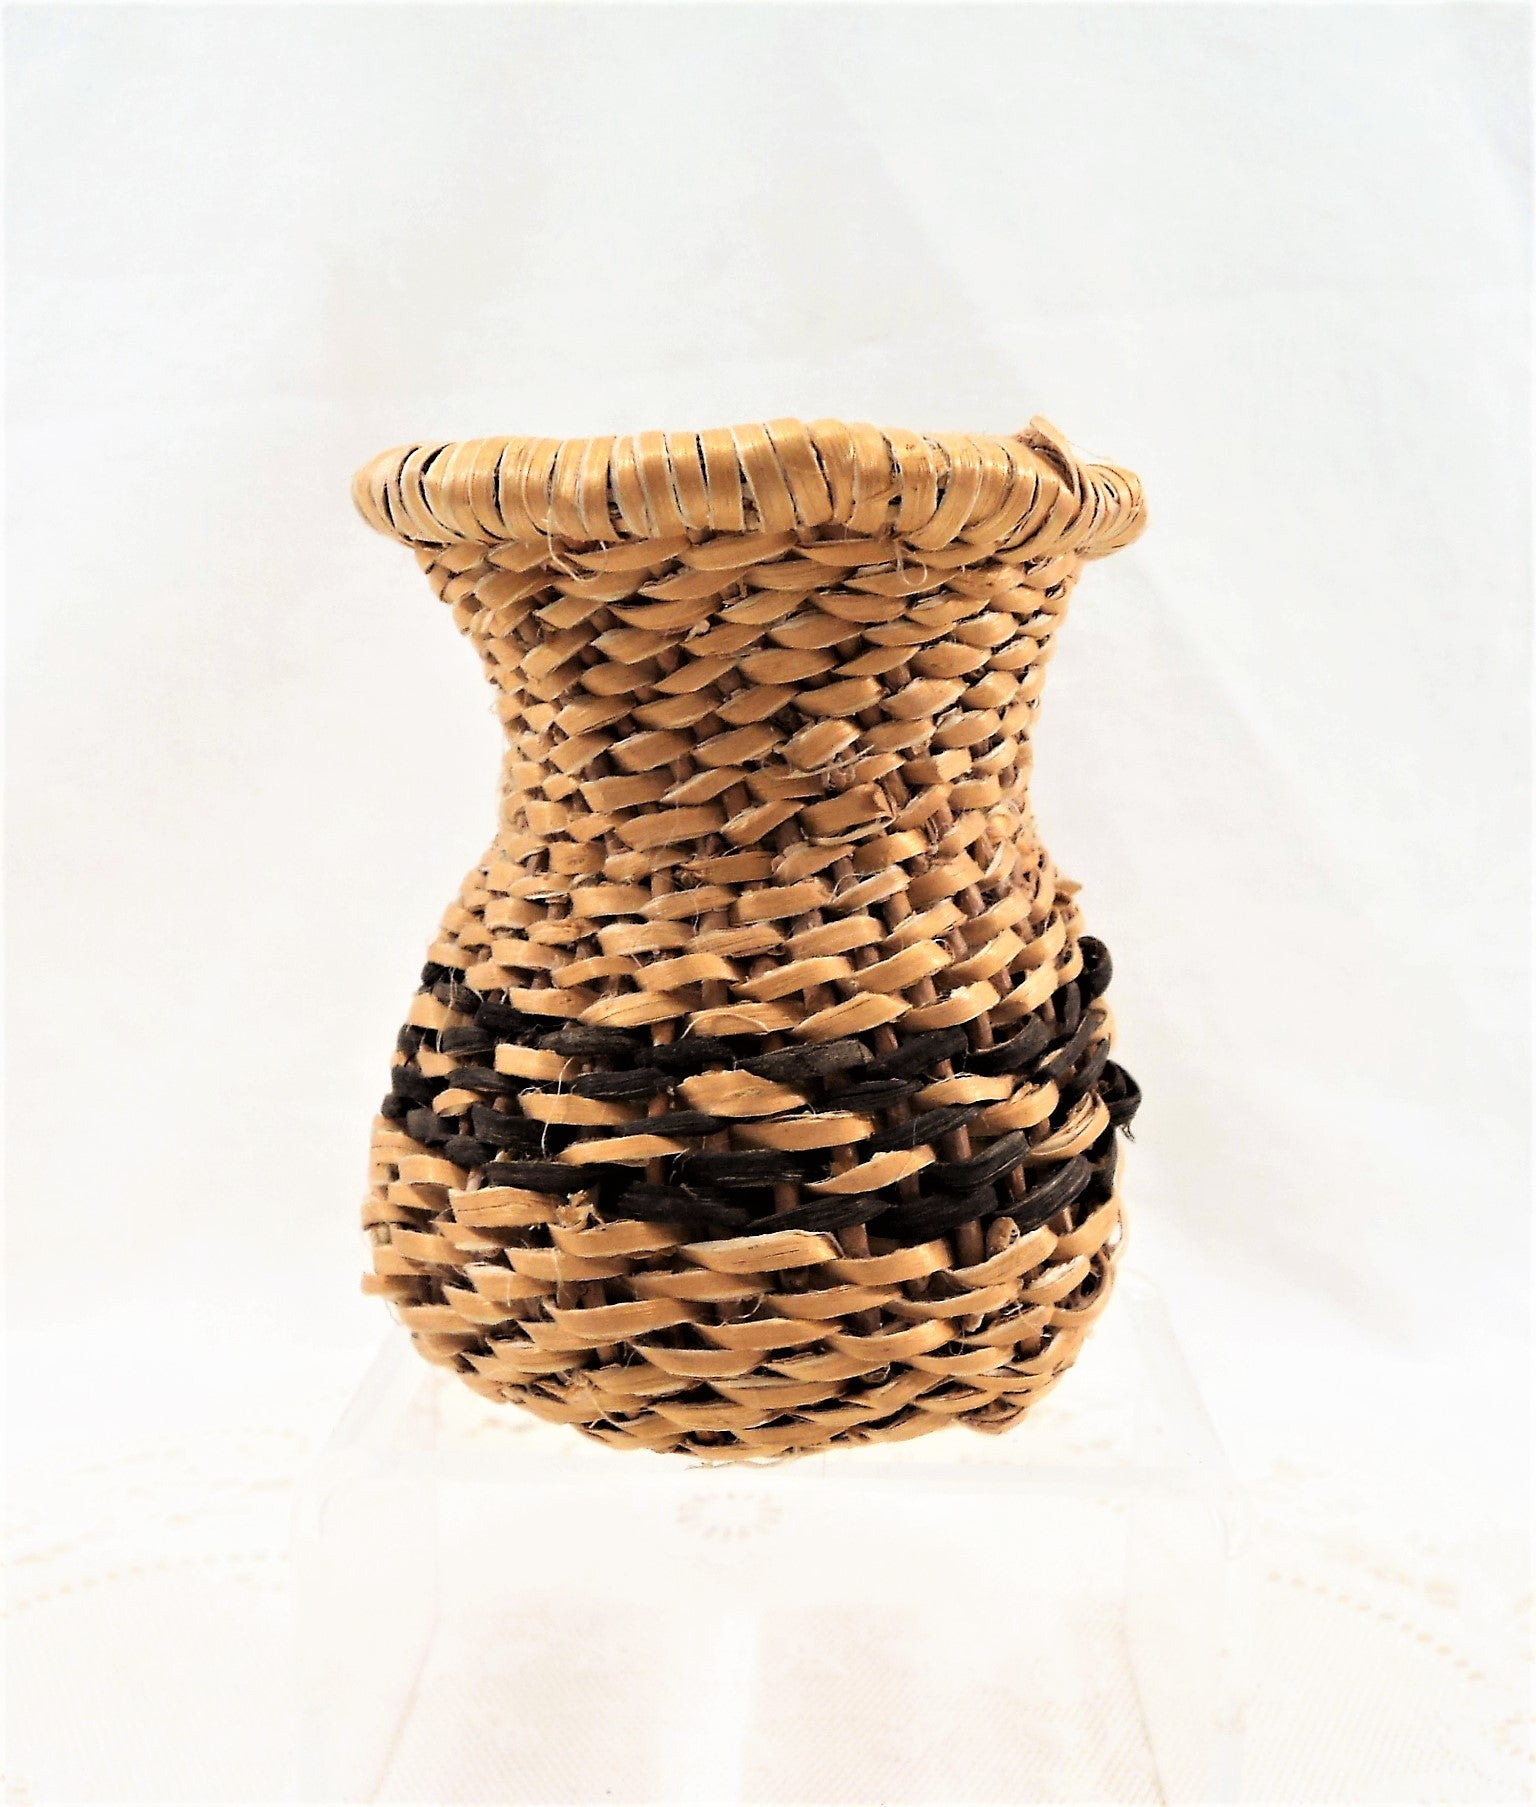 Native American Hand-woven Basket